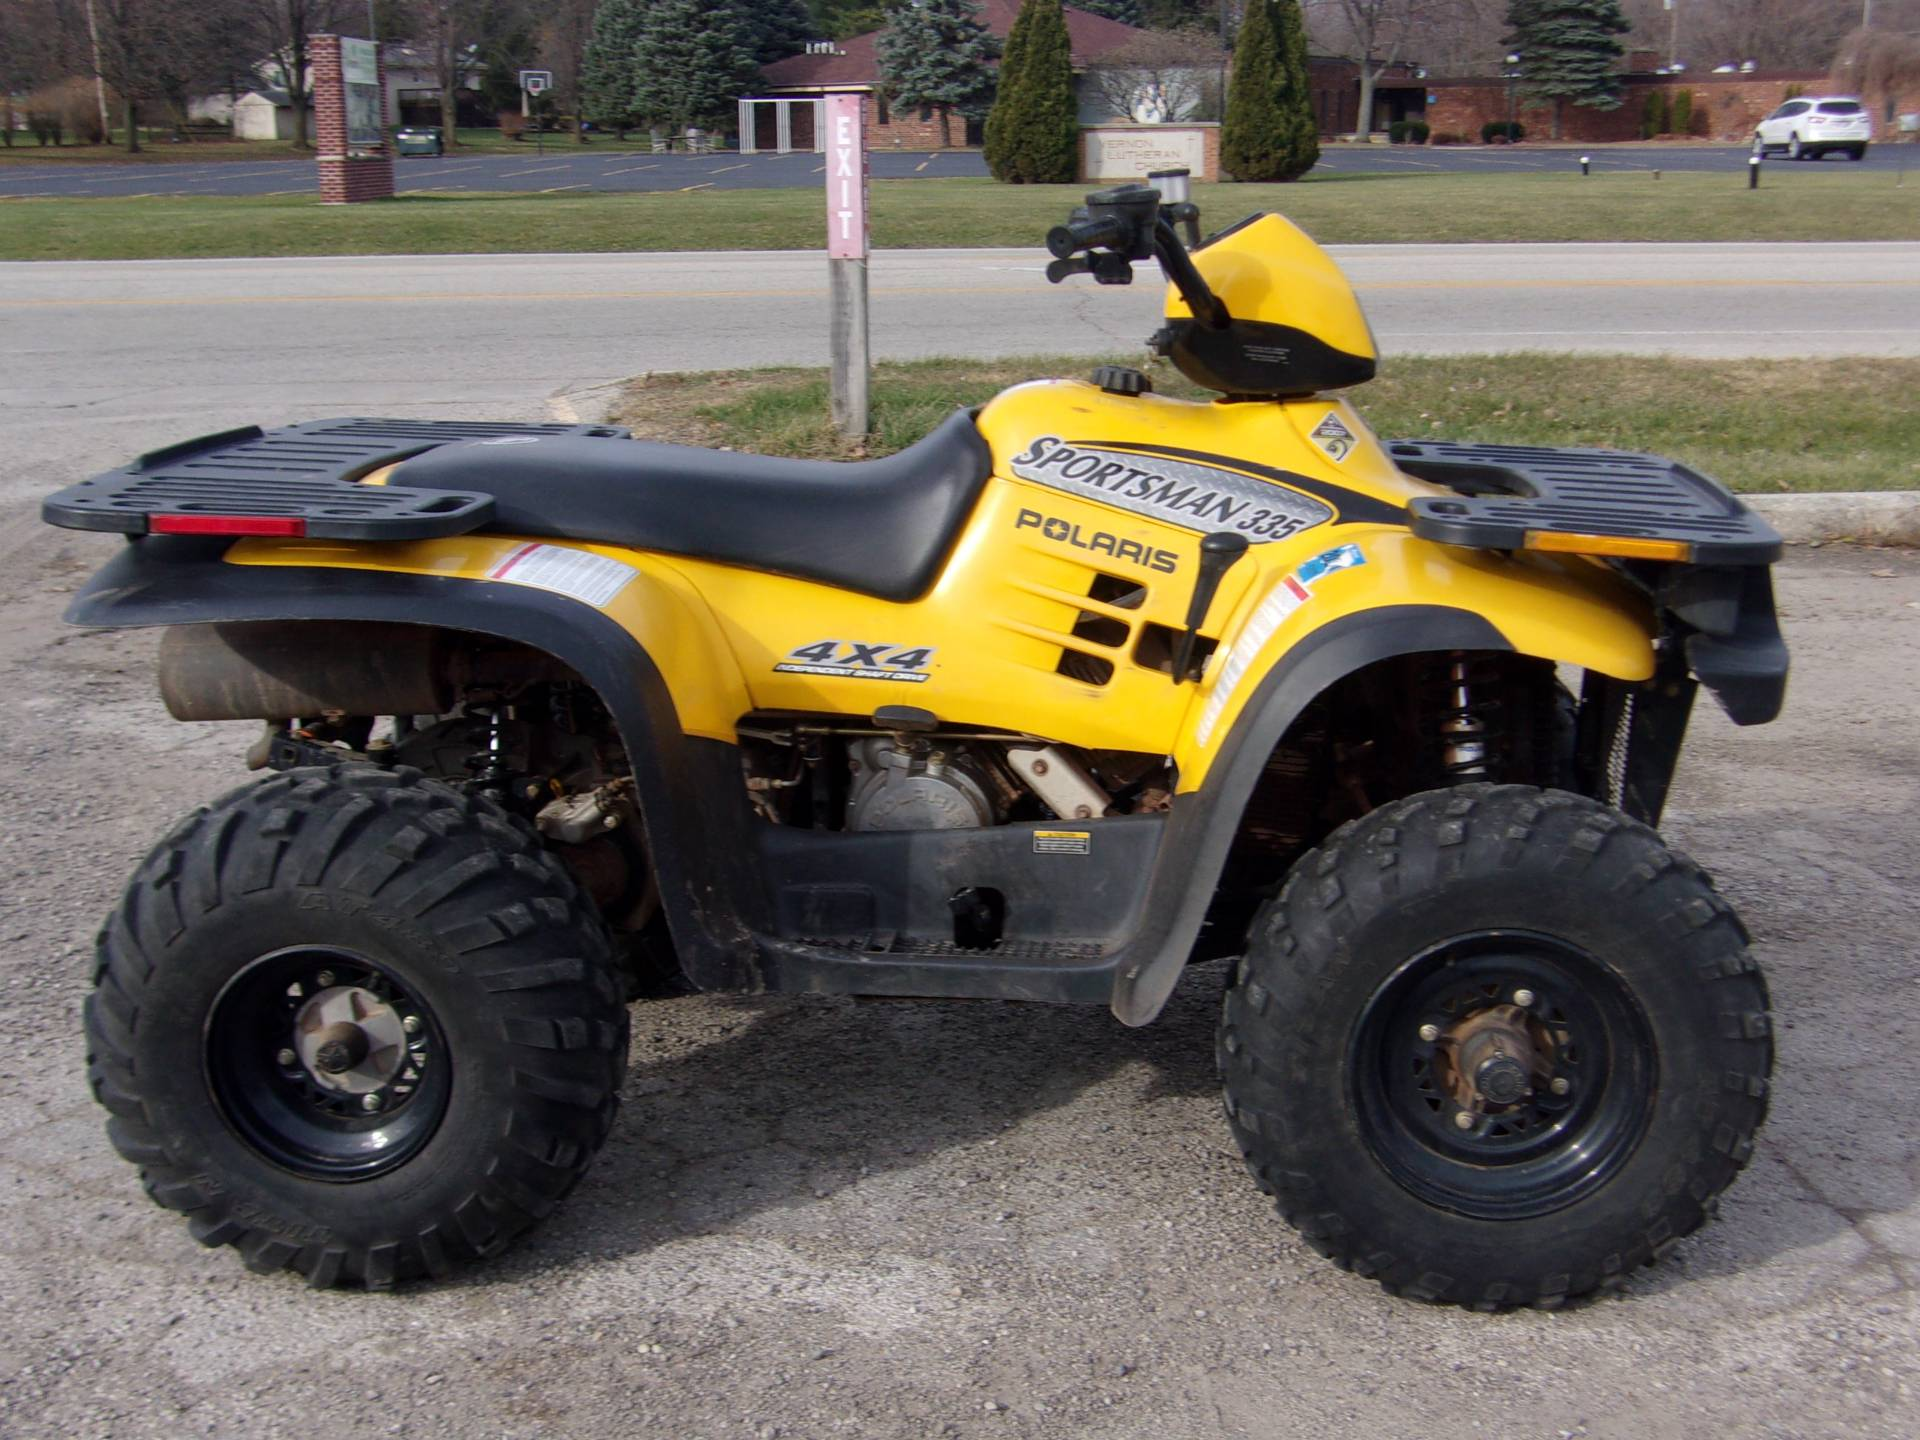 2000 Polaris Sportsman 335 in Mukwonago, Wisconsin - Photo 1